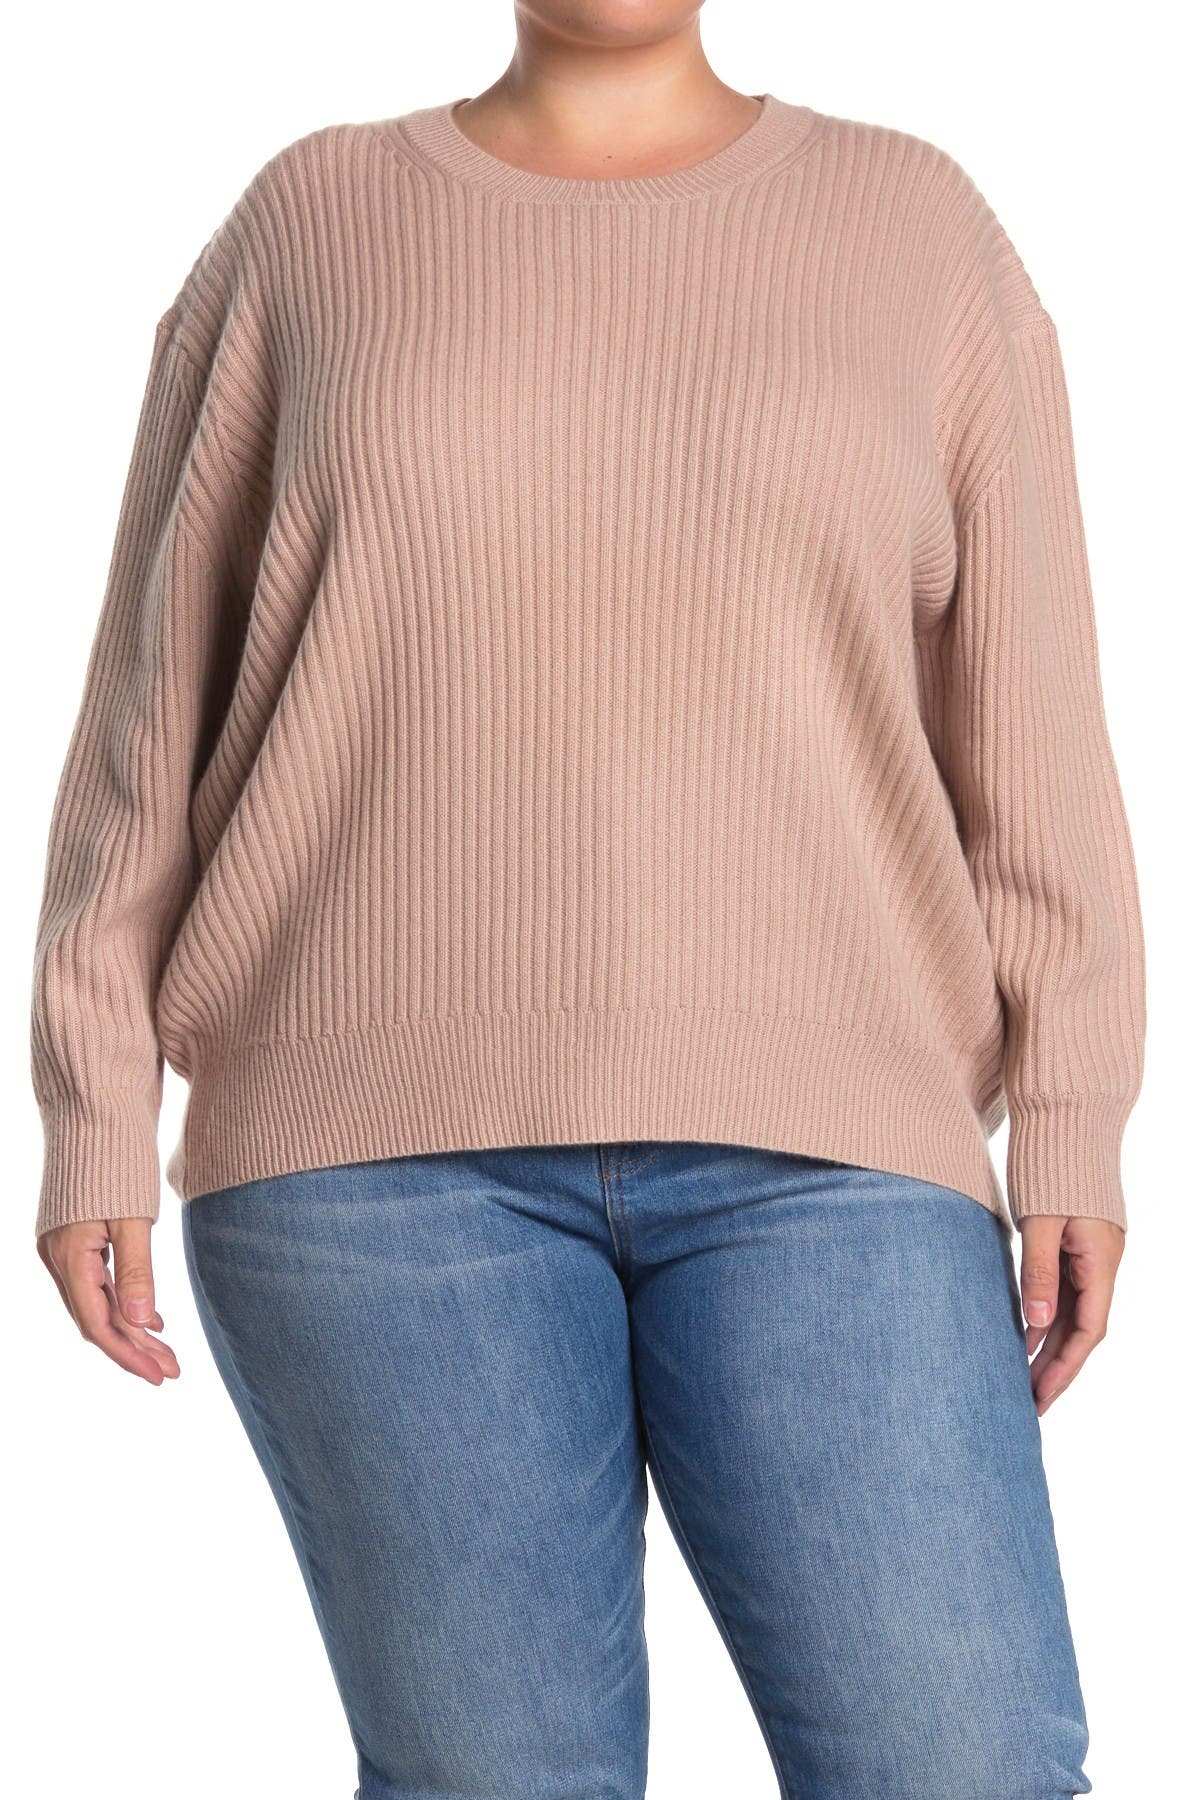 Image of Naked Cashmere Olive Ribbed Cashmere Sweater